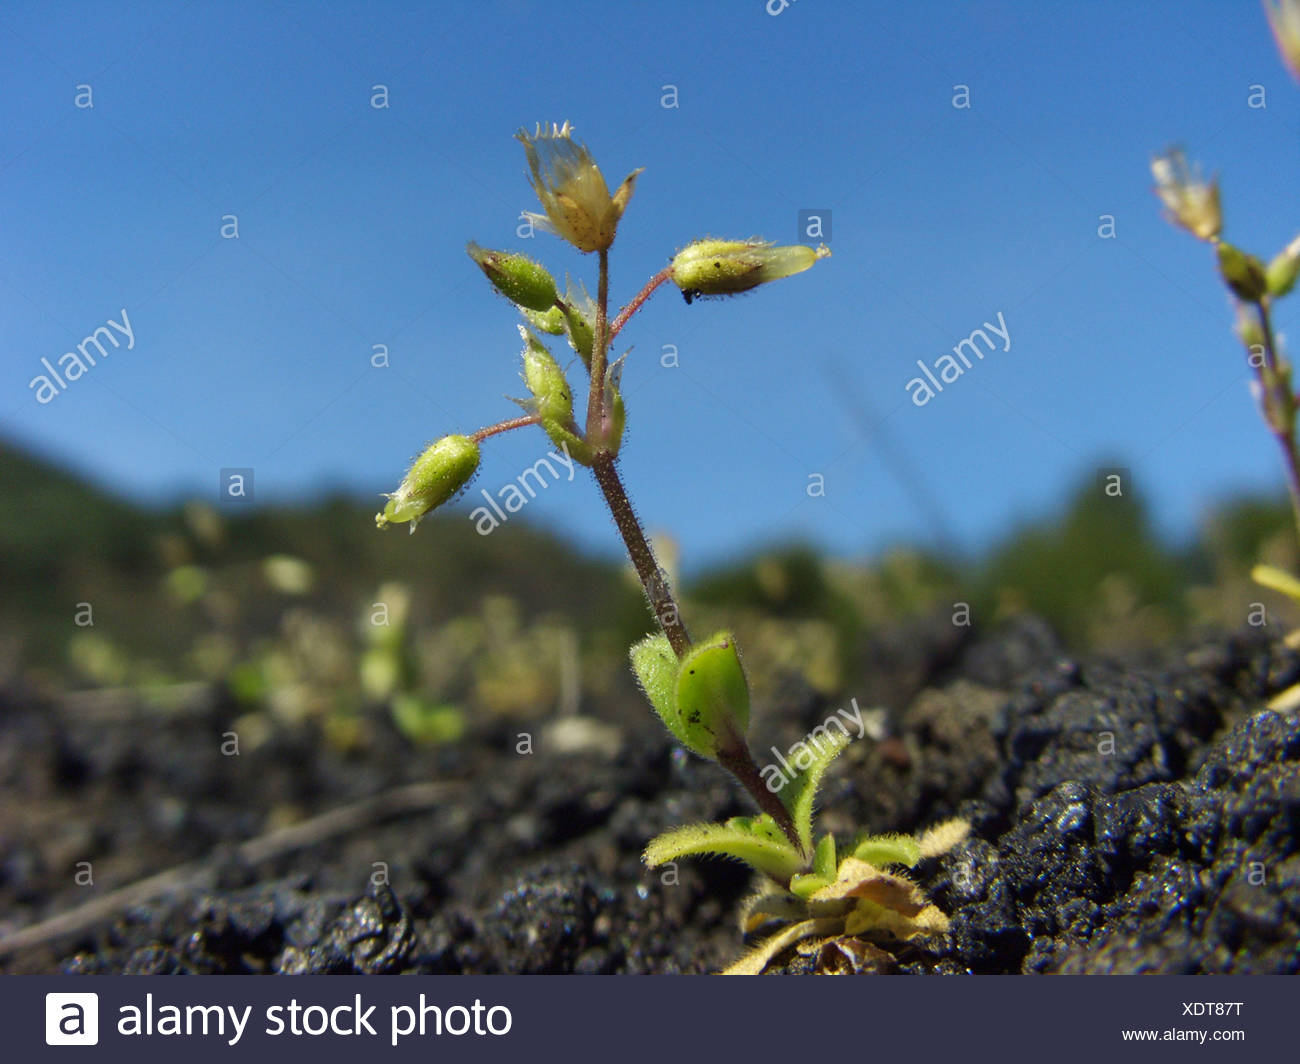 Little mouse-ear, Five-stamen mouse-ear chickweed (Cerastium semidecandrum), single plant growing on a lava field at the southern slope of Mount Etna, Italy, Sicilia - Stock Image